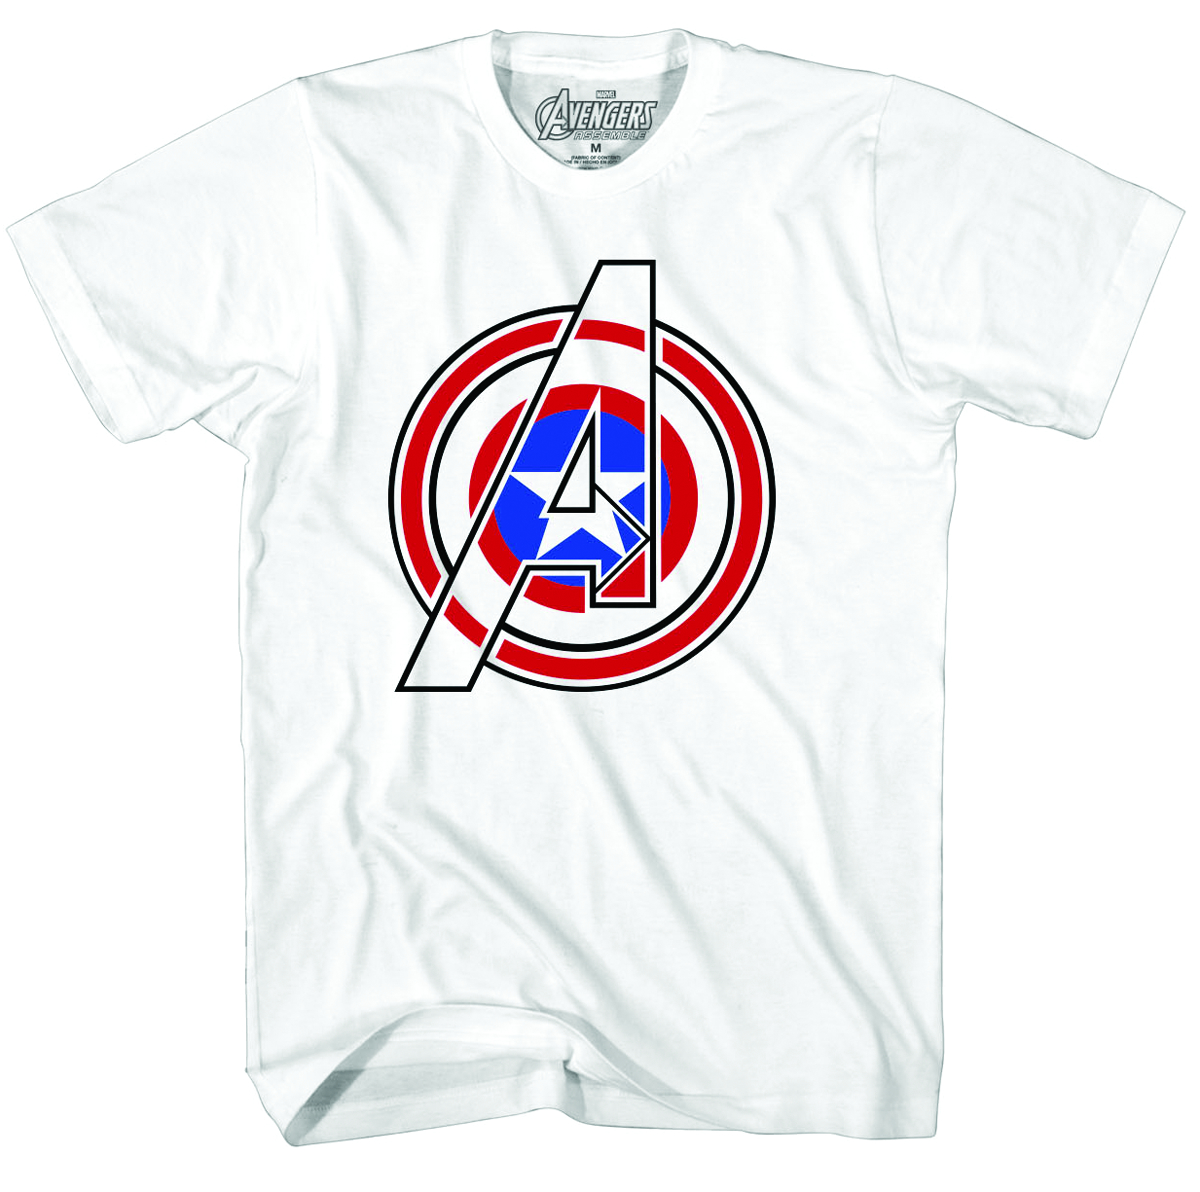 CAPTAIN AMERICA COMBINED ICONS PX WHT T/S LG